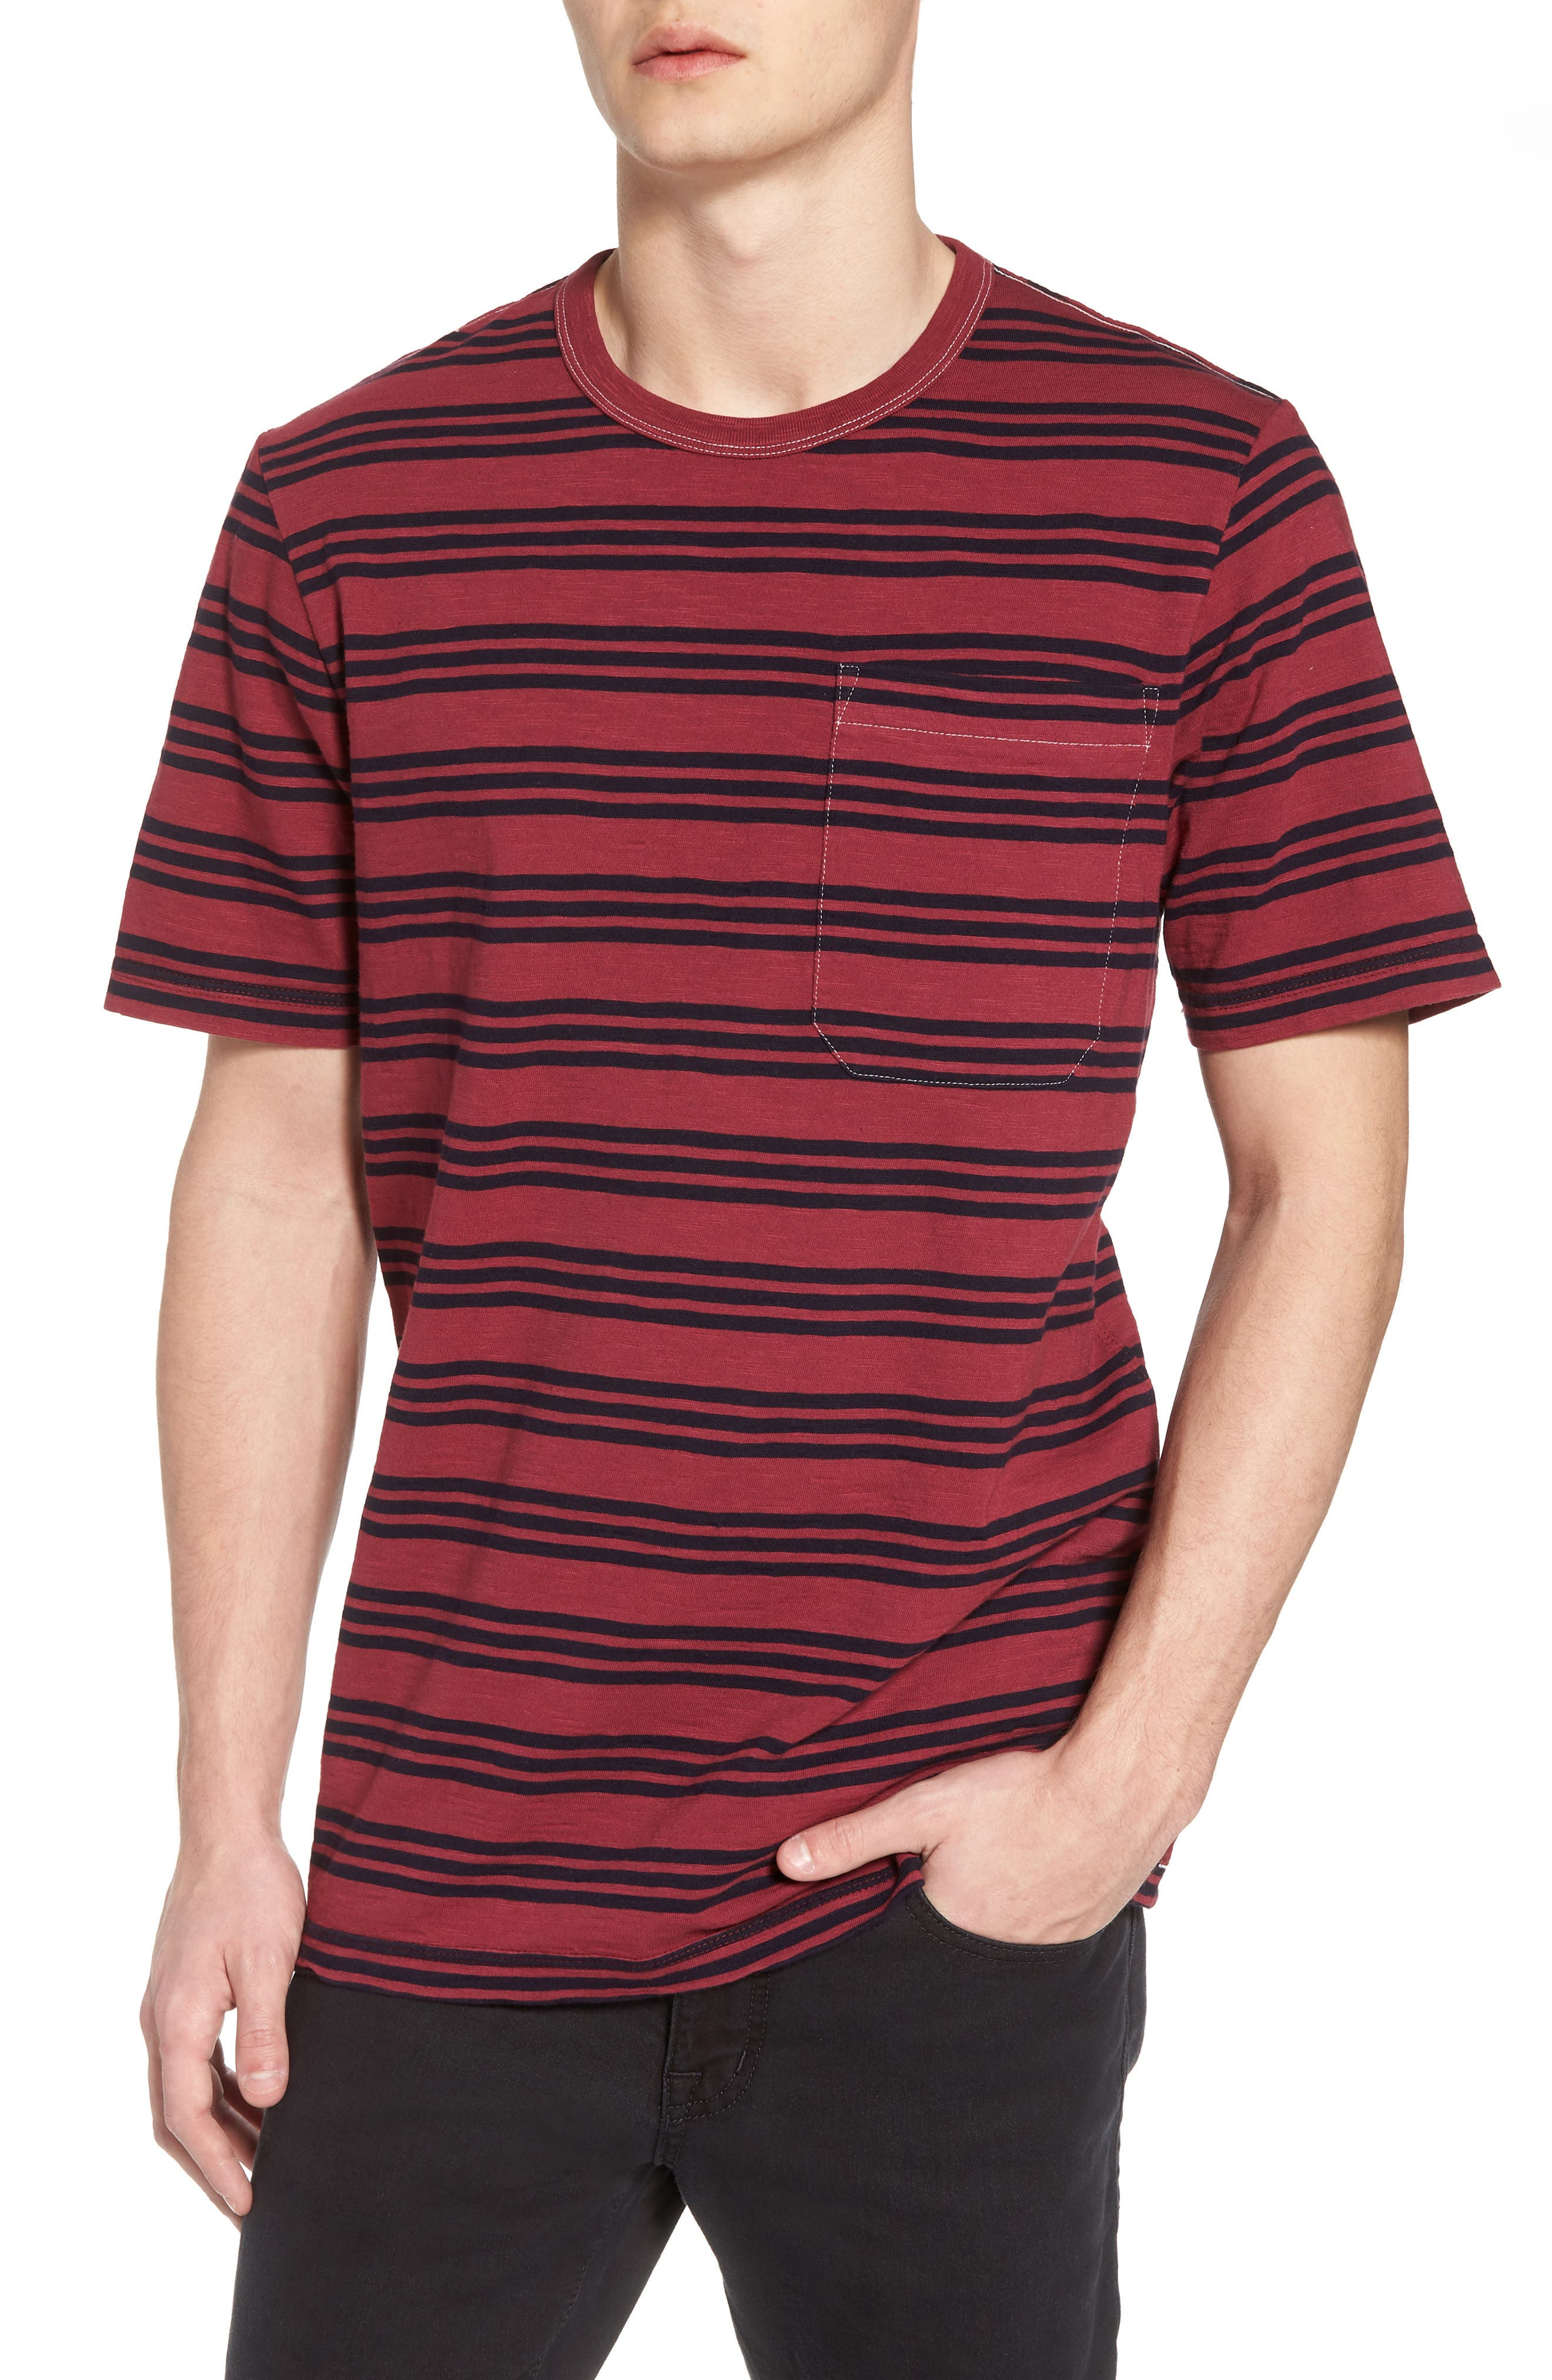 Main Image - French Connection Triple Stripe Garment Dyed T-Shirt